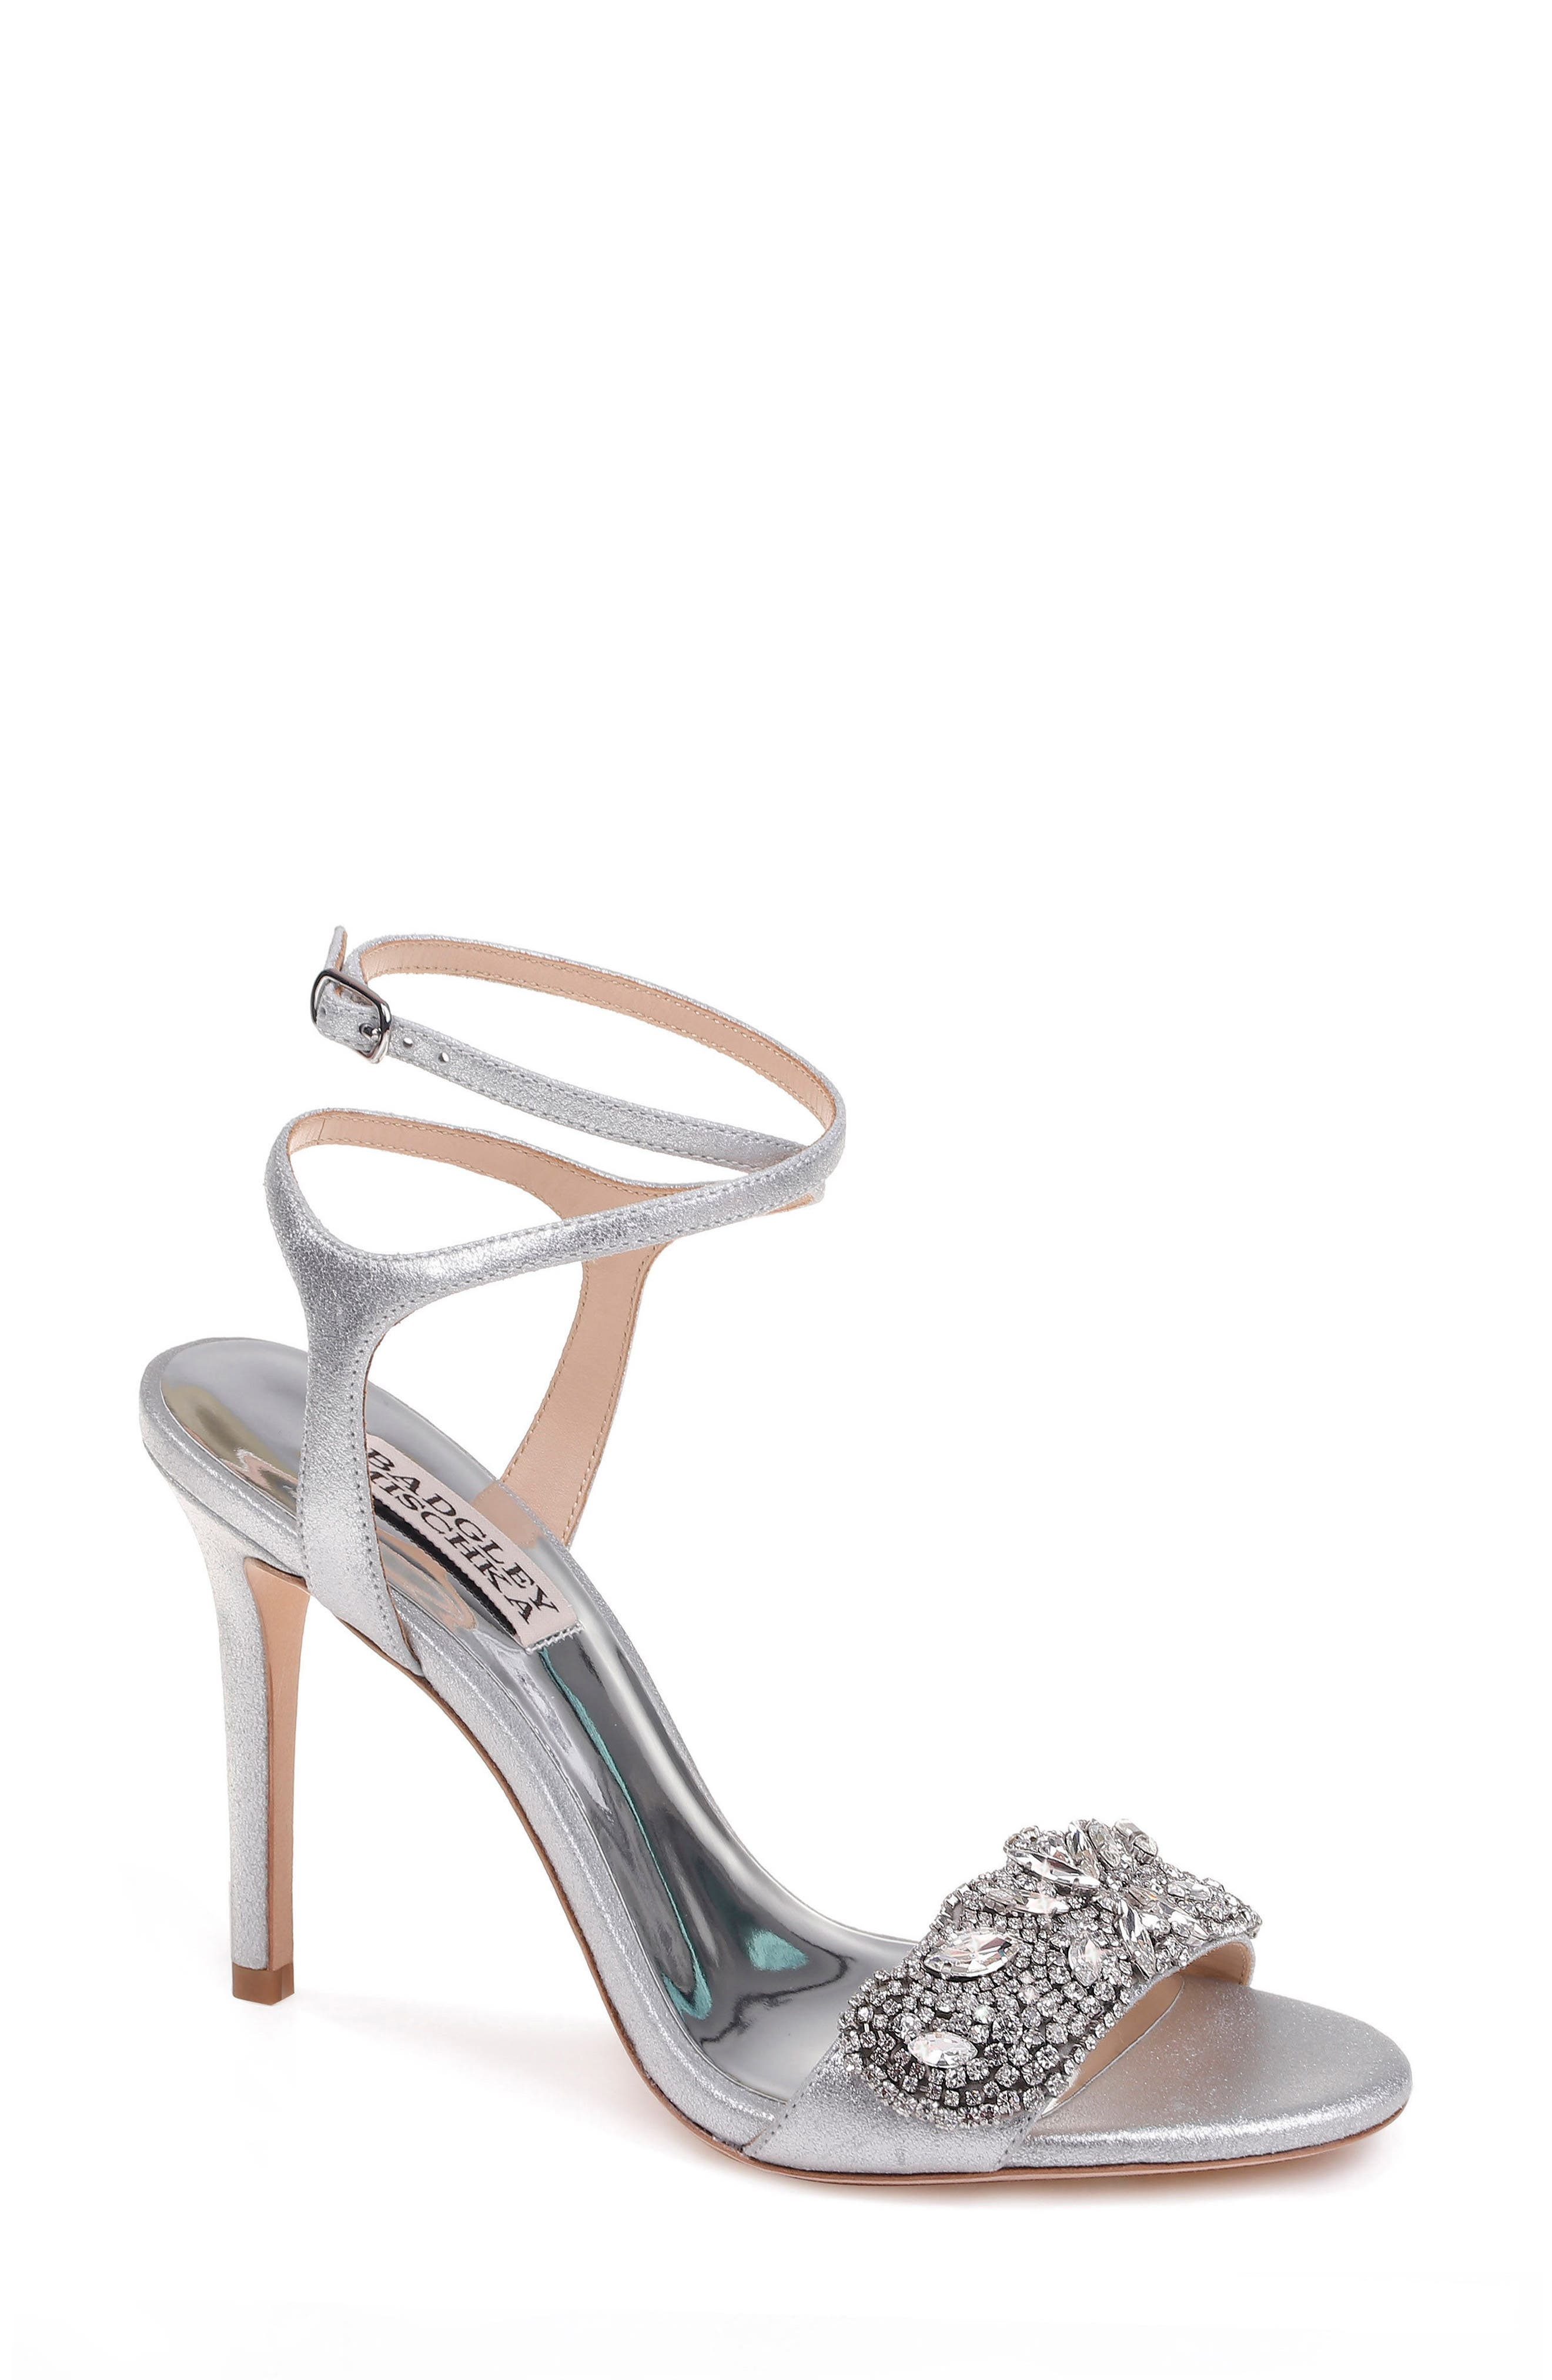 Hailey Embellished Ankle Strap Sandal,                         Main,                         color, Silver Metallic Suede